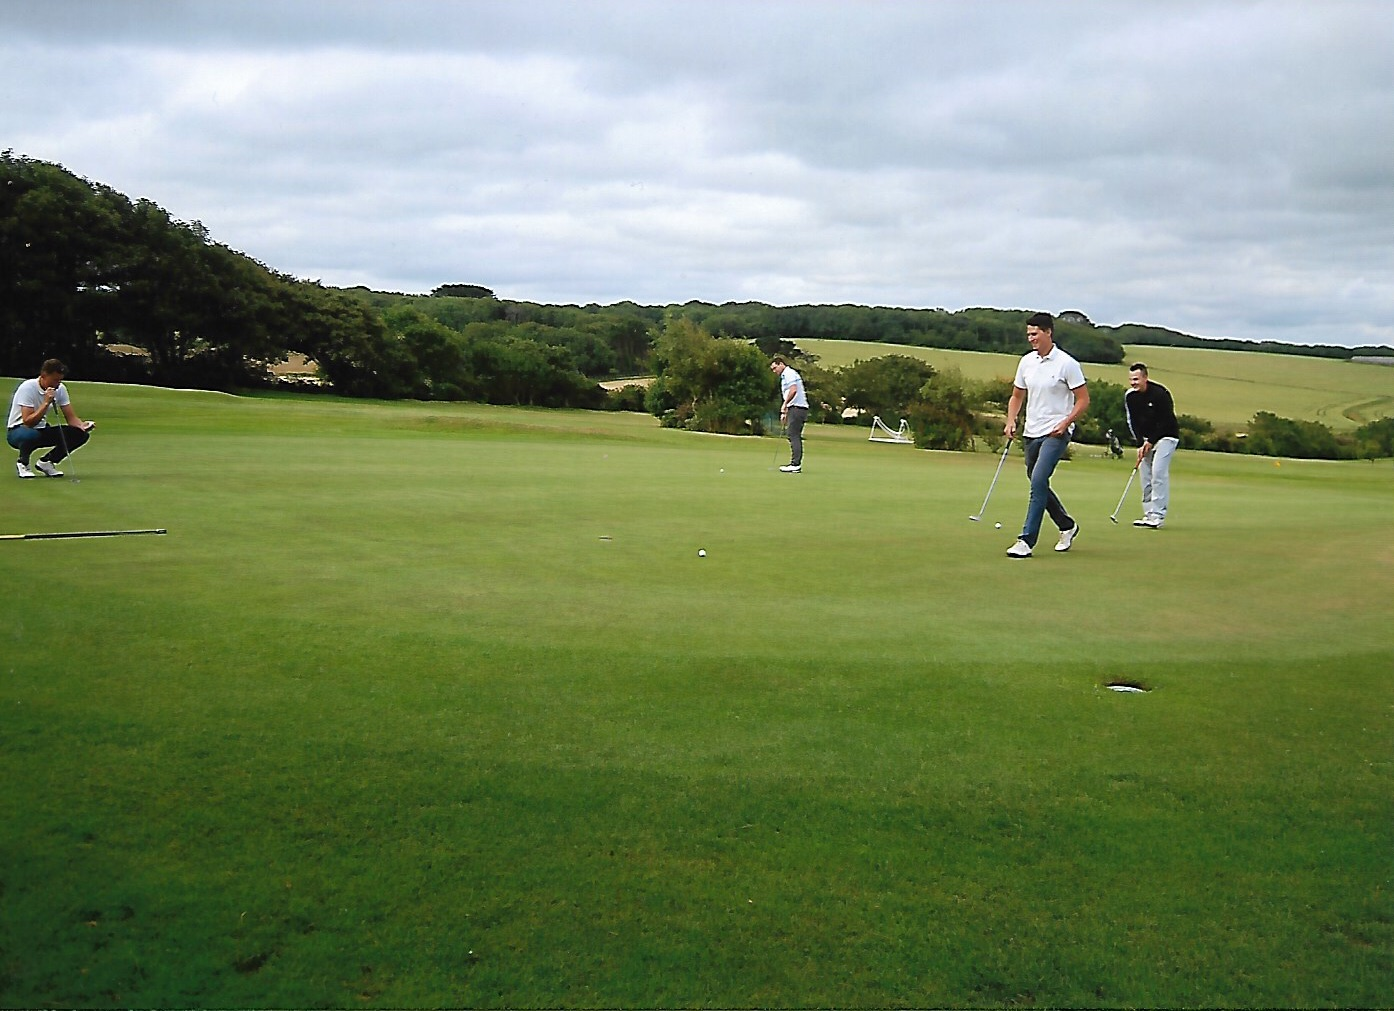 Golfers pictured in action during the 72 hole marathon